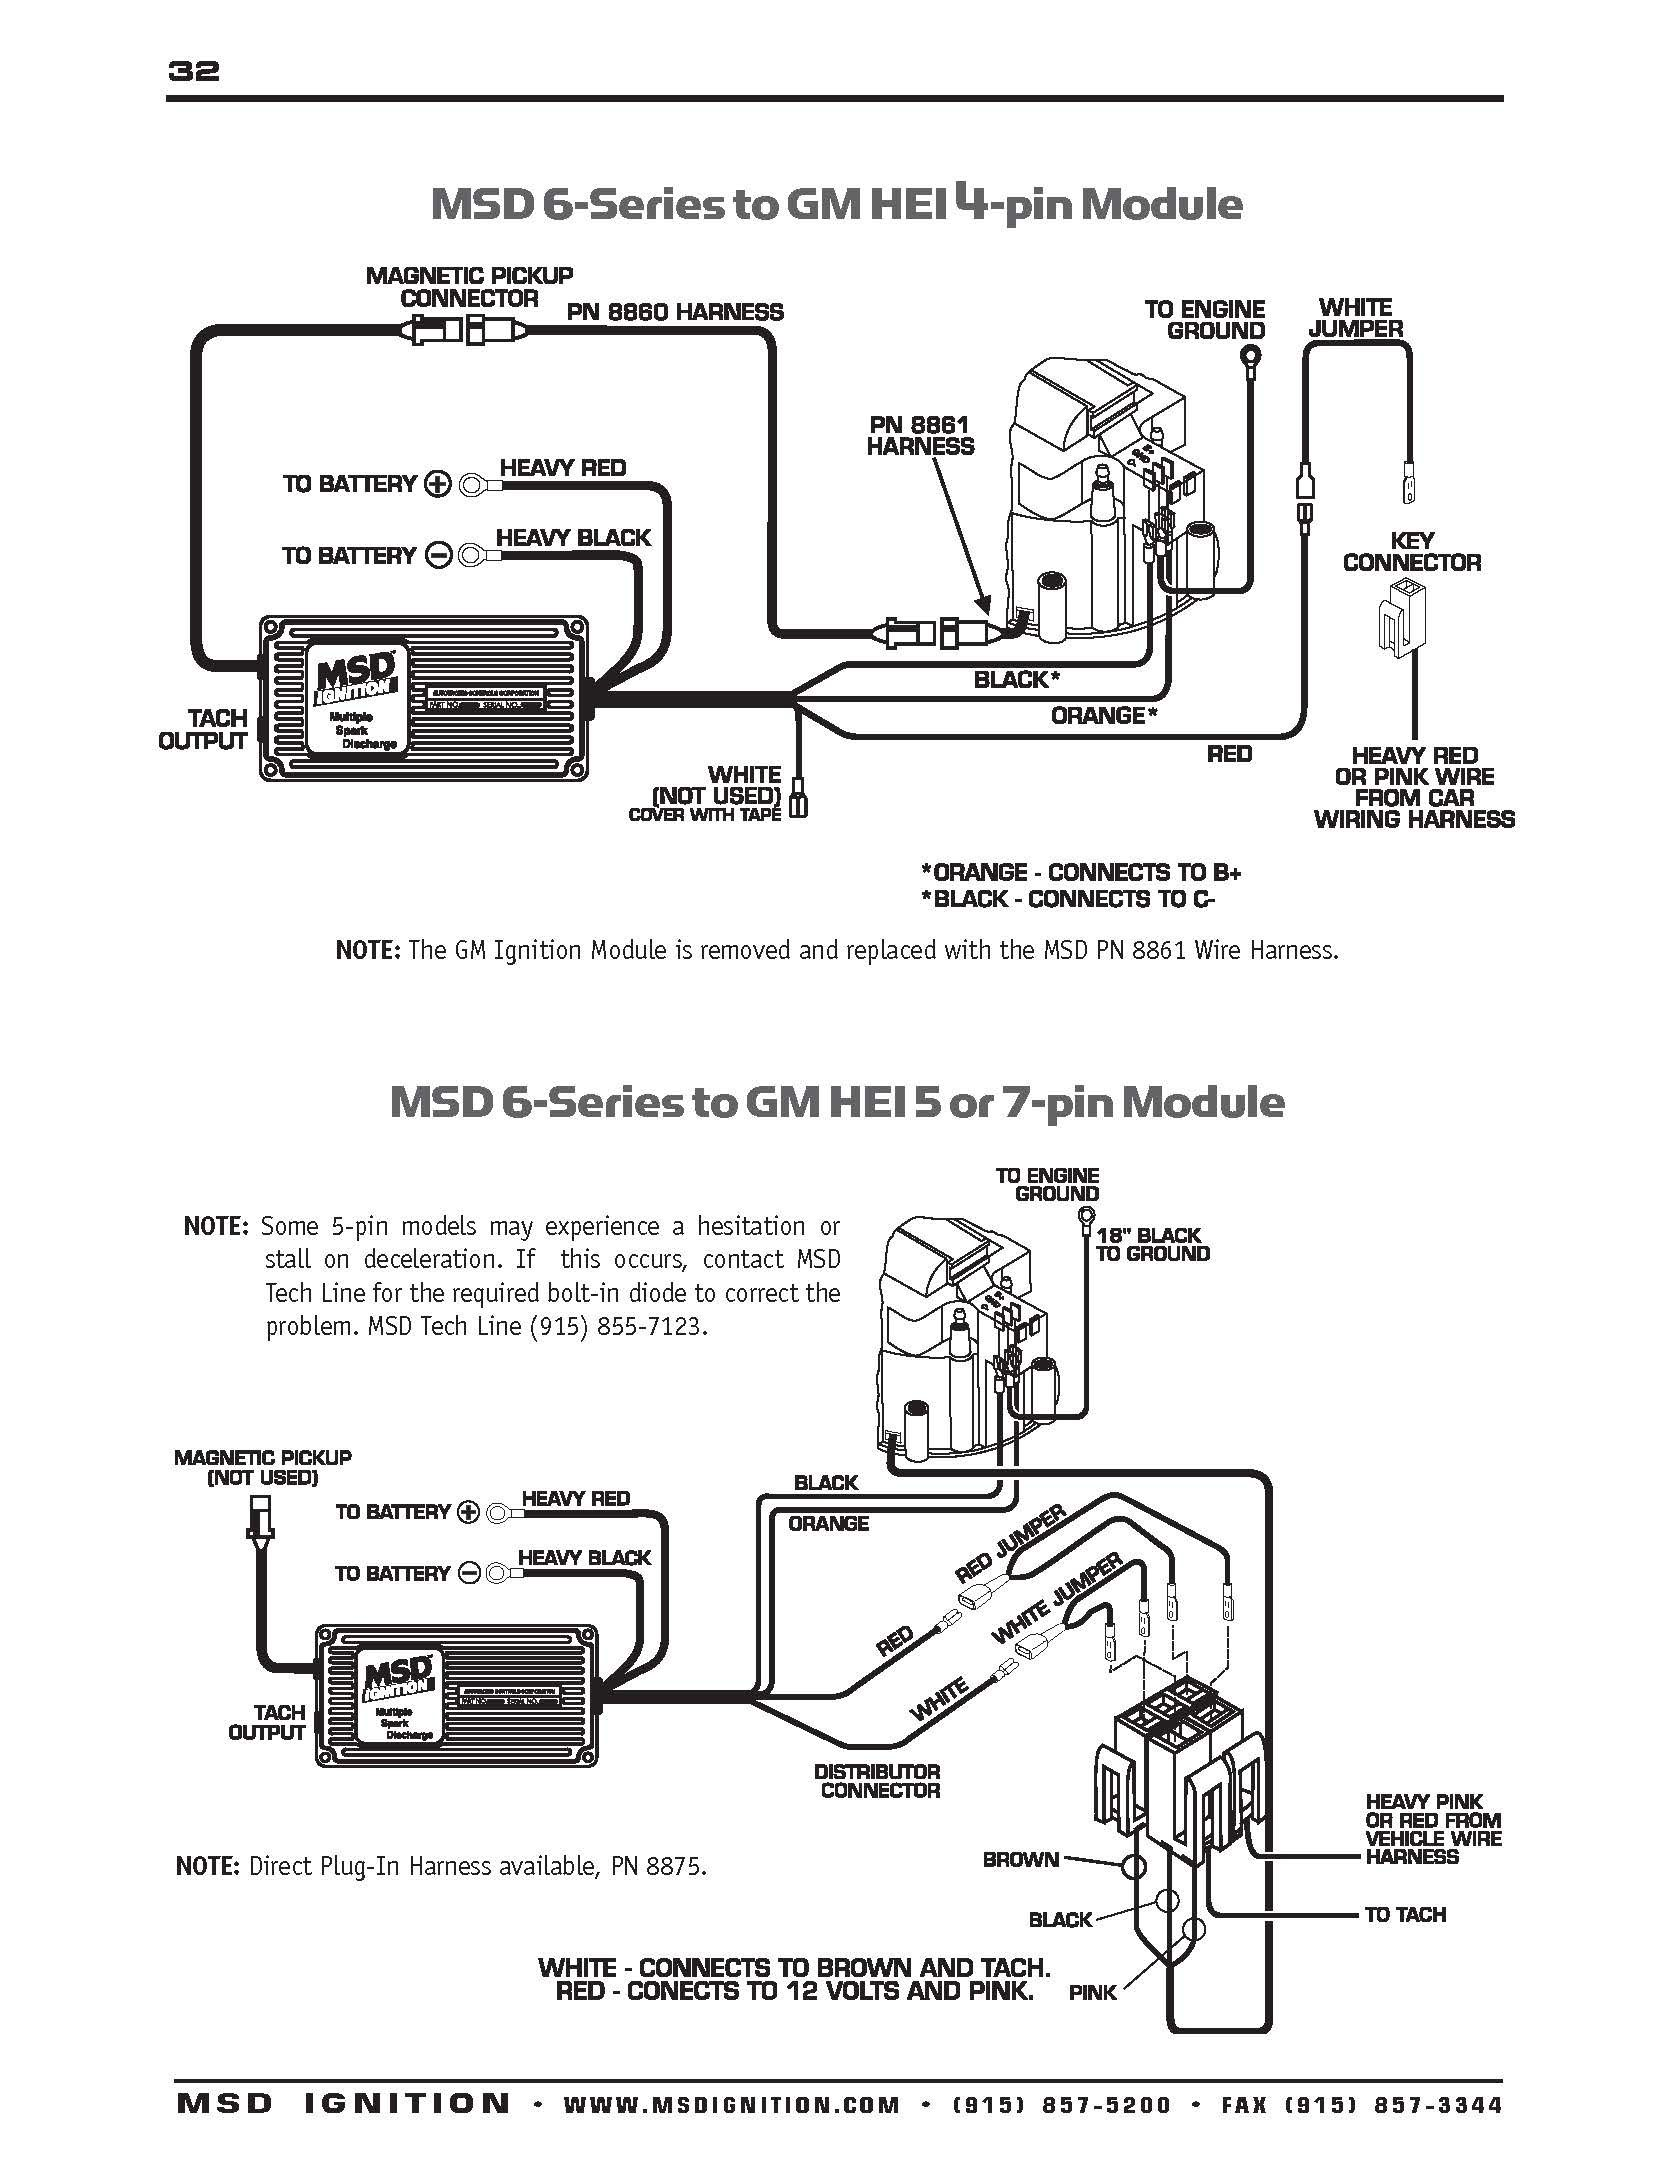 small resolution of msd ignition wiring diagrams 1966 chevelle diagram automotive 66 chevelle ignition switch wiring diagram 1966 chevelle ignition wiring diagram